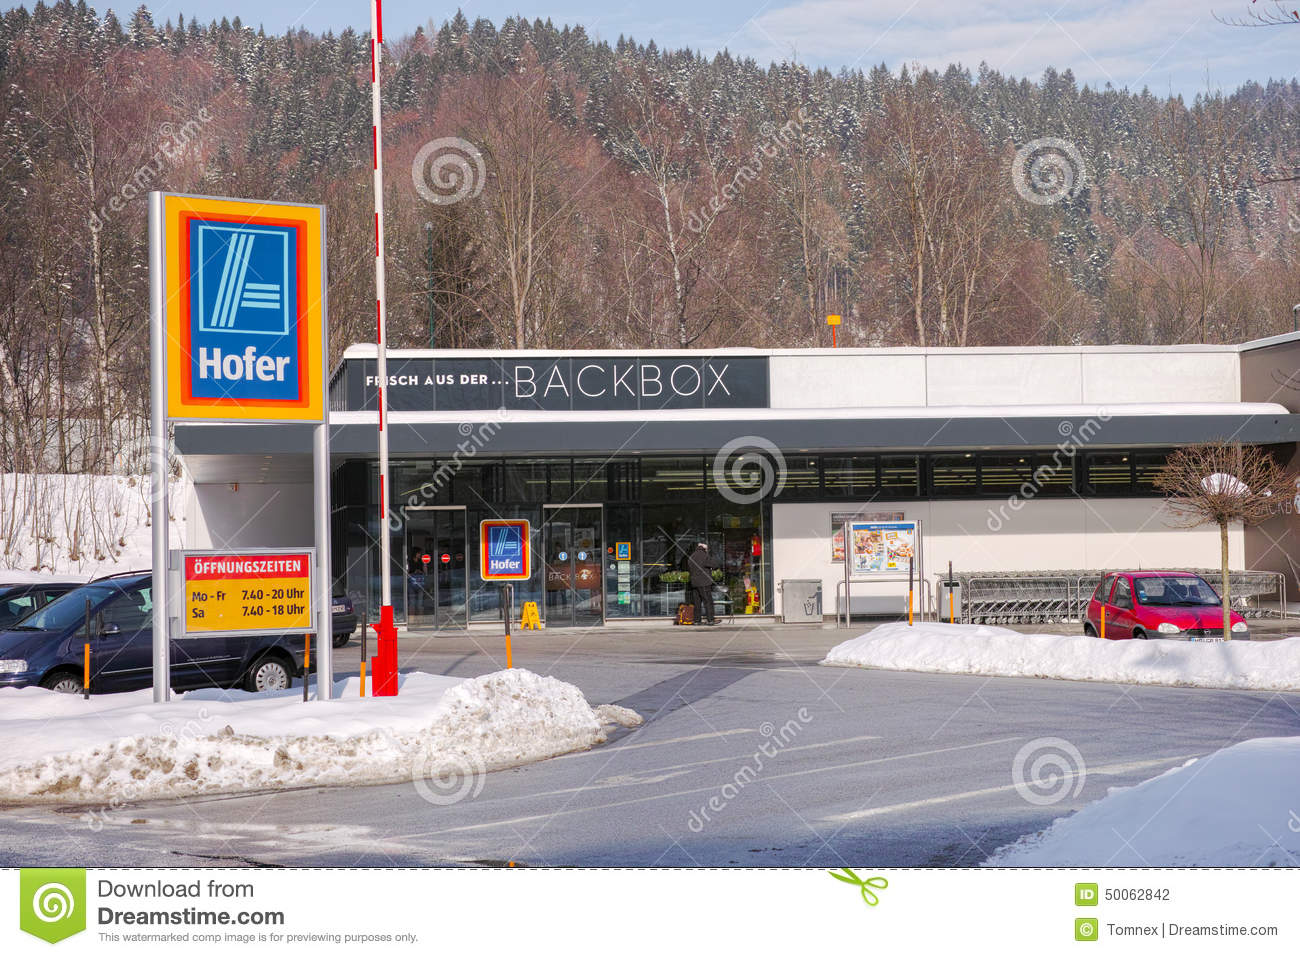 Aldi stock photos royalty free pictures aldi hofer establishing shot of an austrian aldi hofer store with lots of copy space biocorpaavc